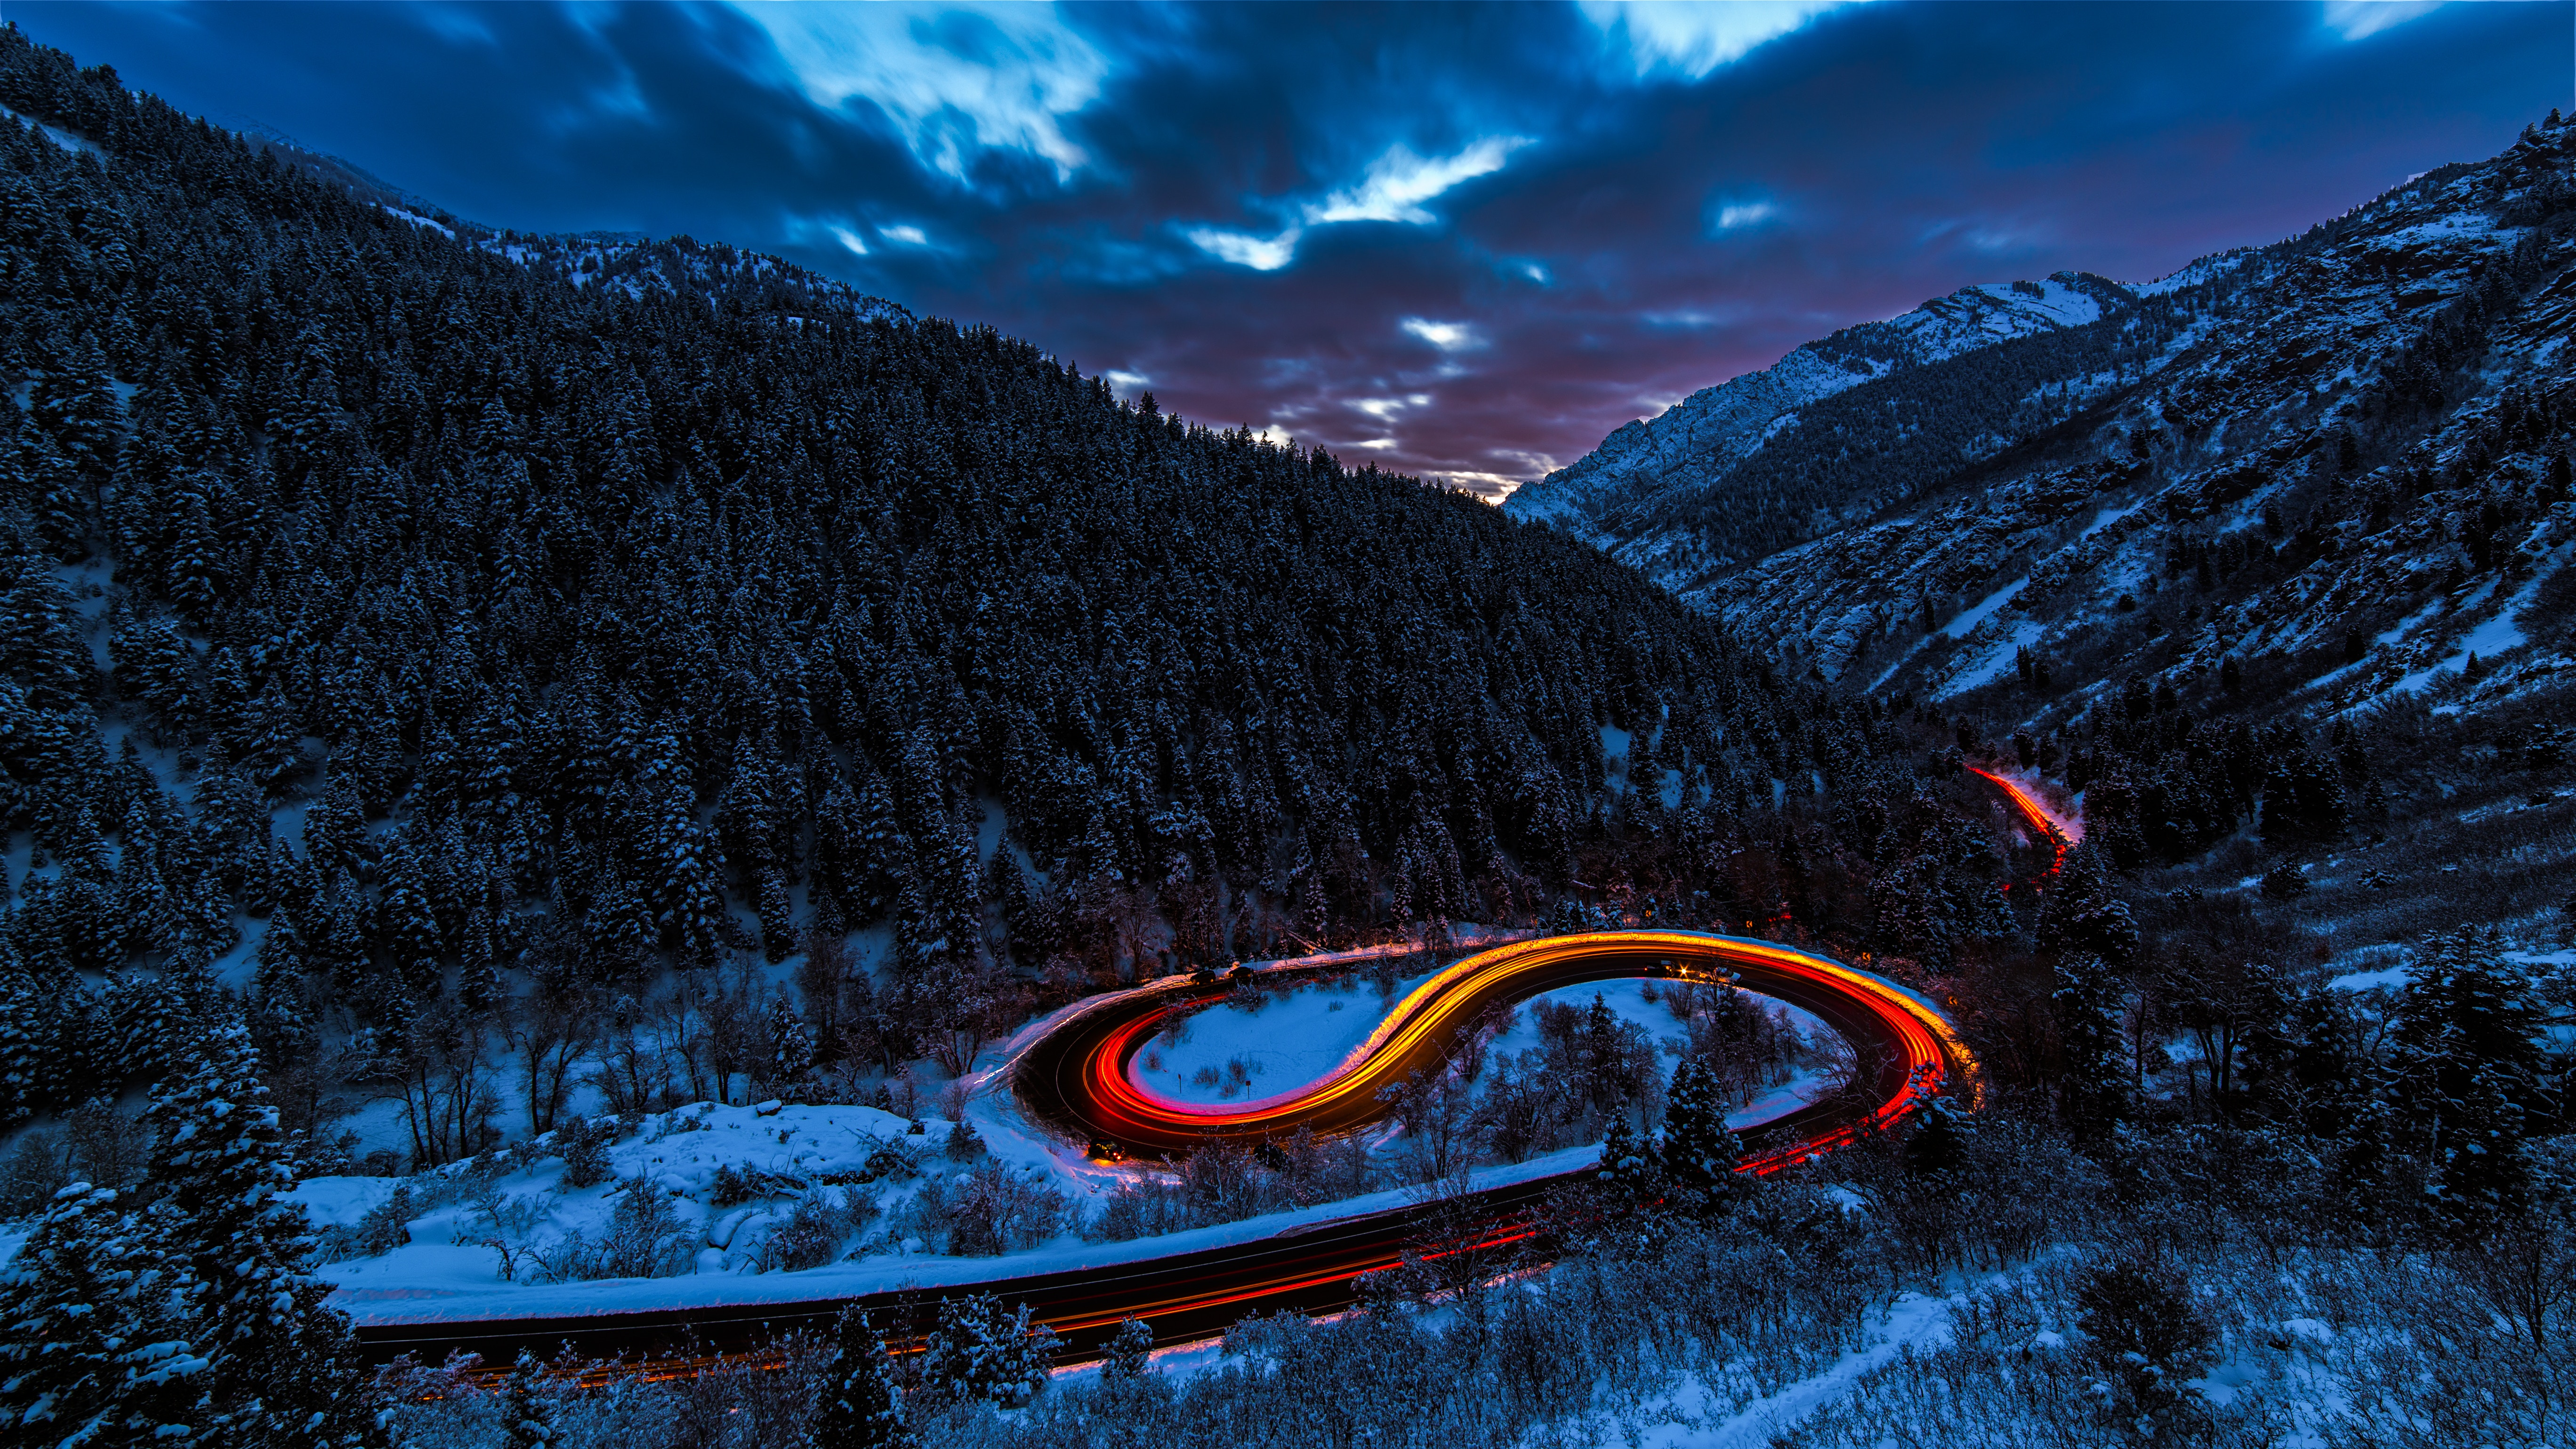 92610 download wallpaper Nature, Road, Shine, Light, Sky, Forest, Snow, Mountains screensavers and pictures for free